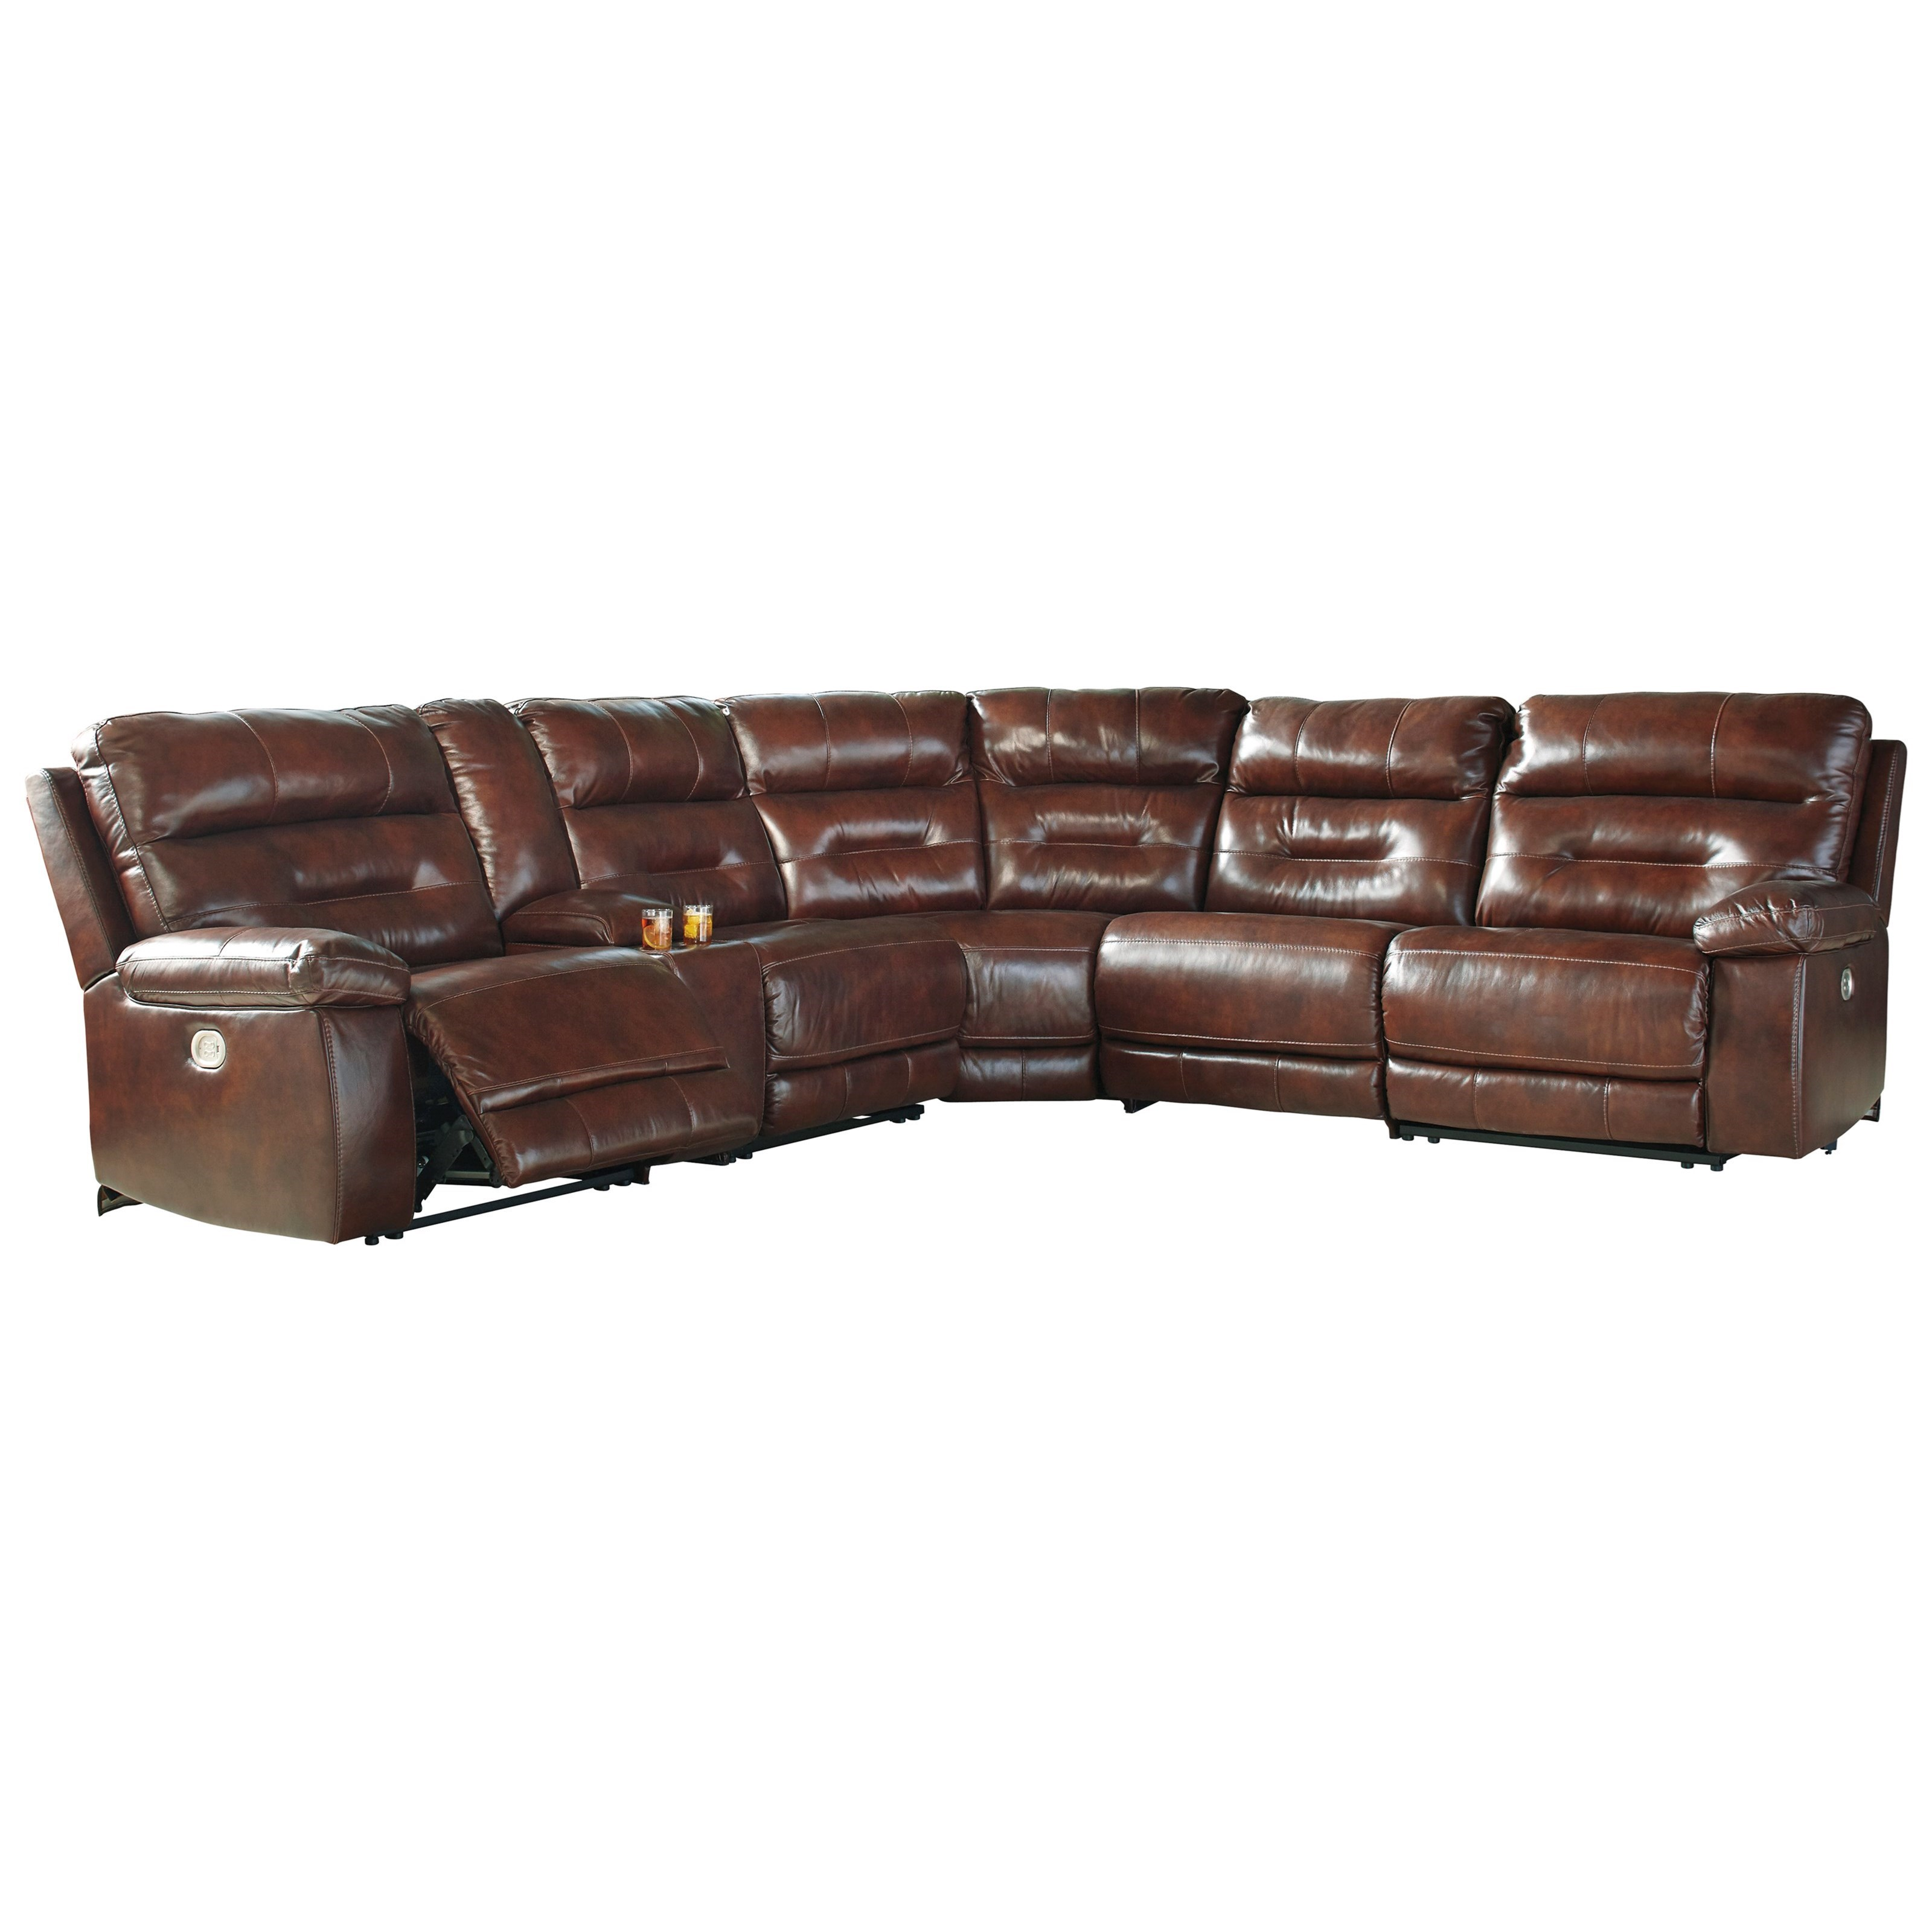 Signature Design by Ashley Bancker Power Reclining Sectional - Item Number: 7030058+57+46+77+19+62